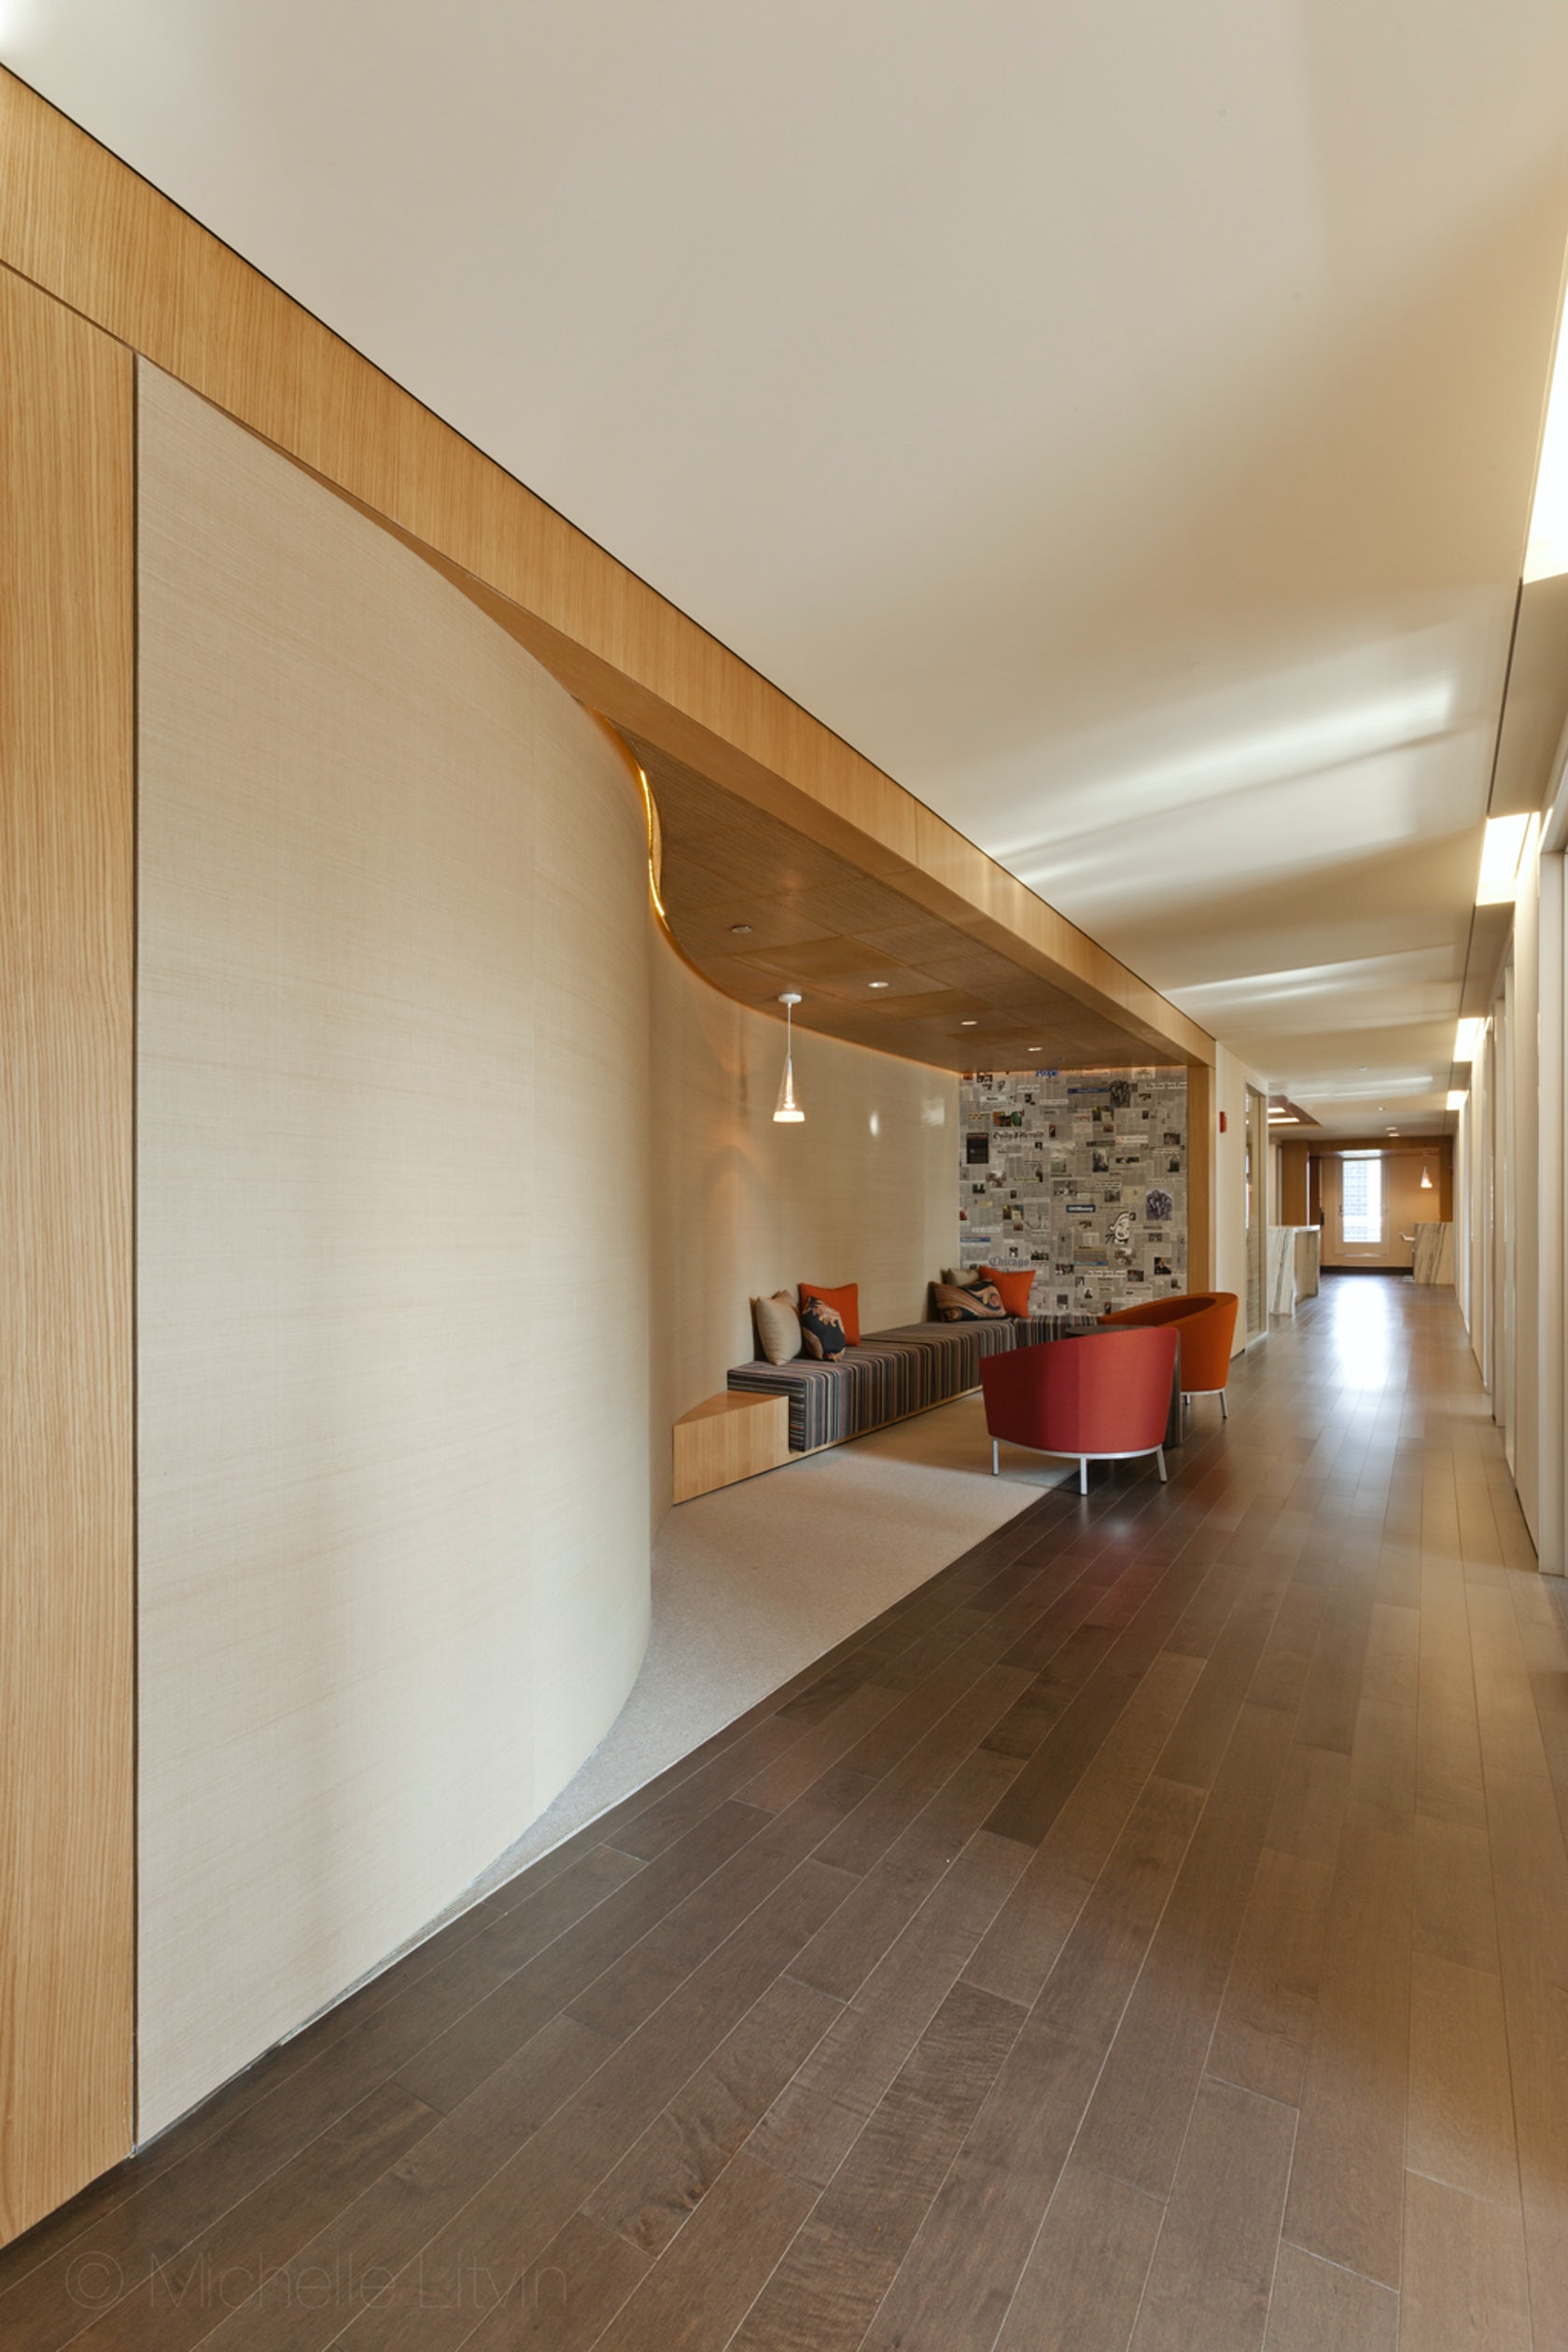 Stowell friedman law offices architizer - Interior design firms chicago ...